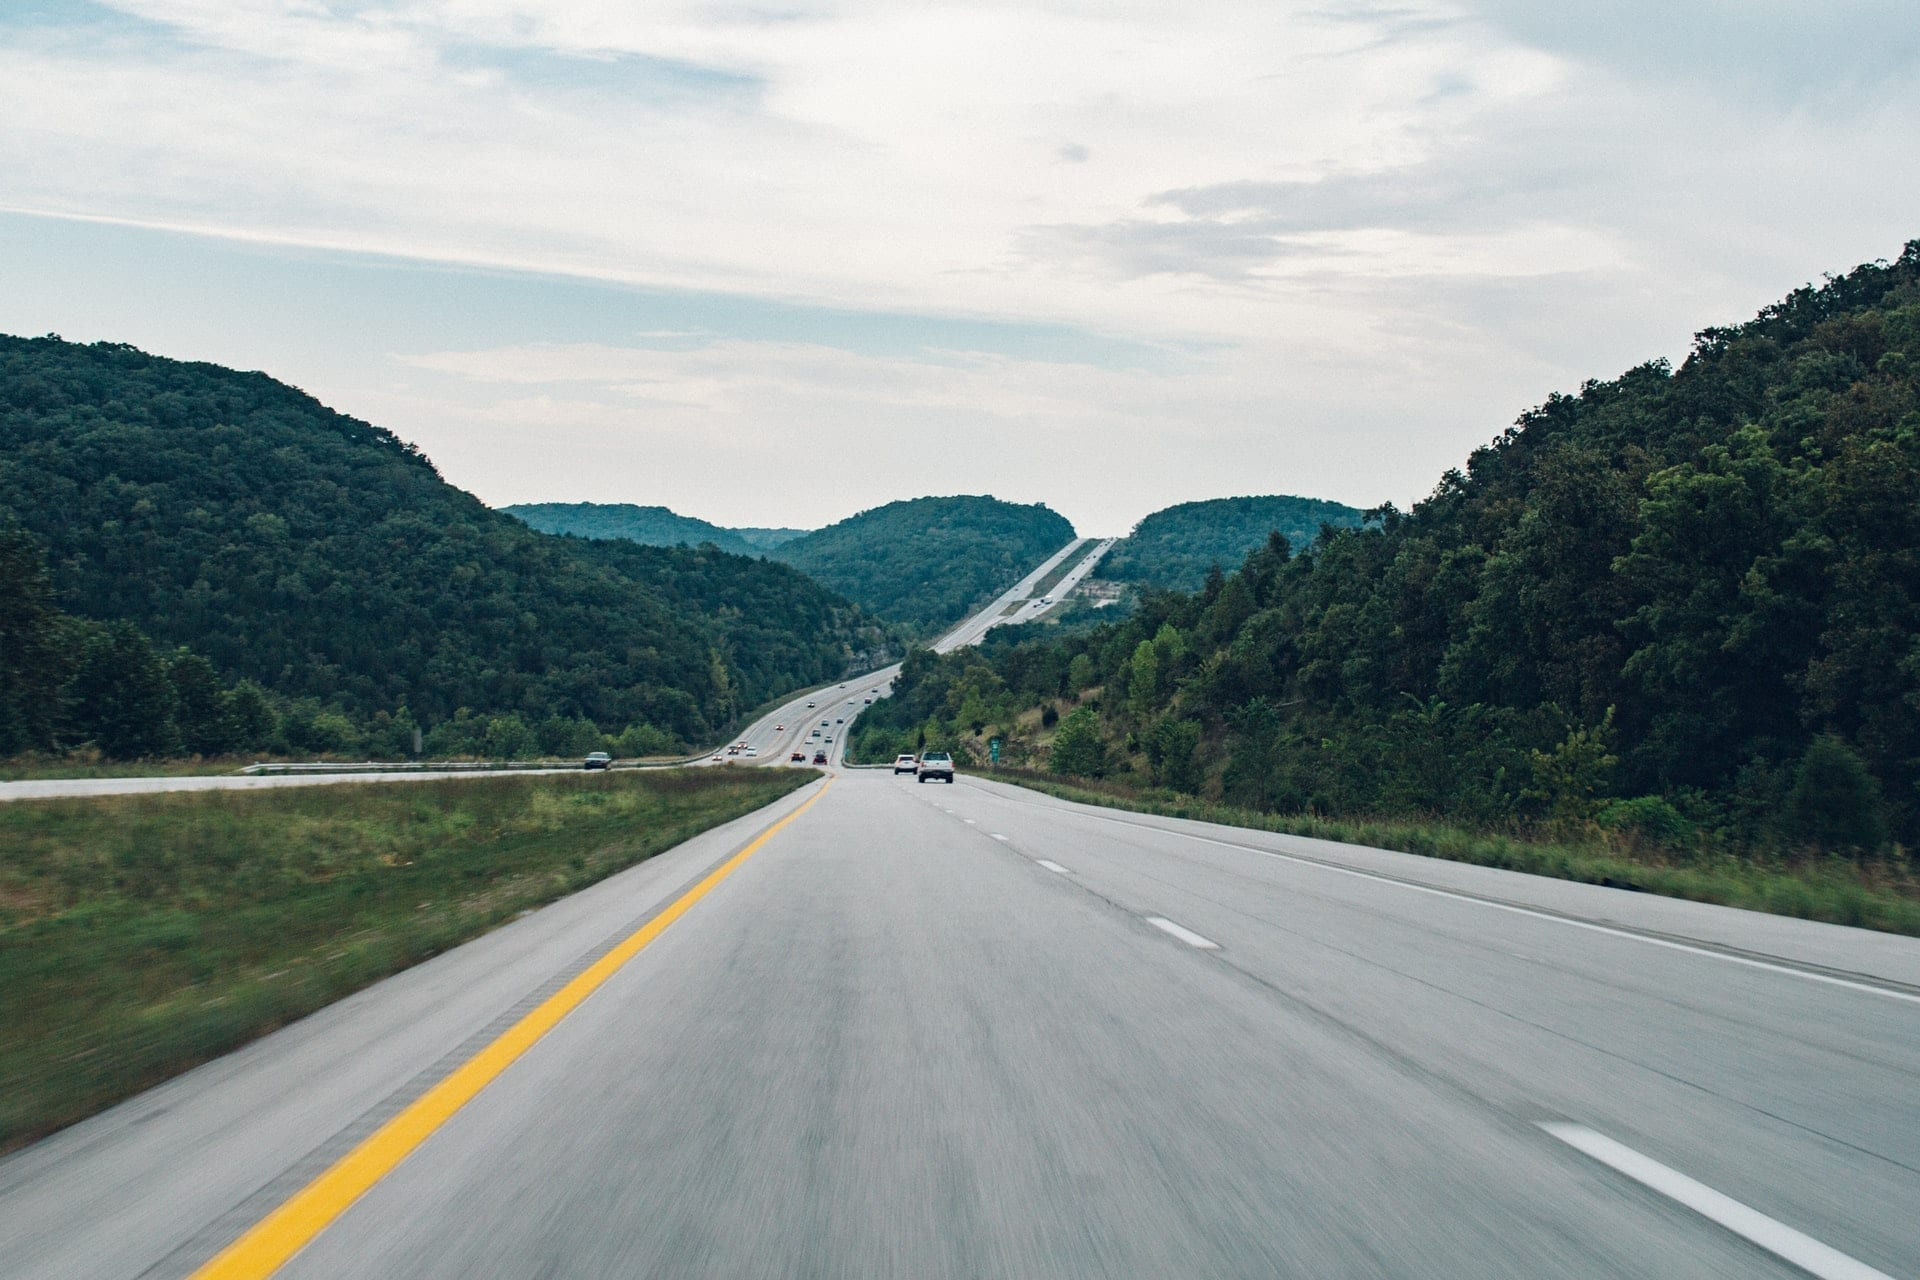 Freeway through forested hills, photo credit: Josh Sorenson